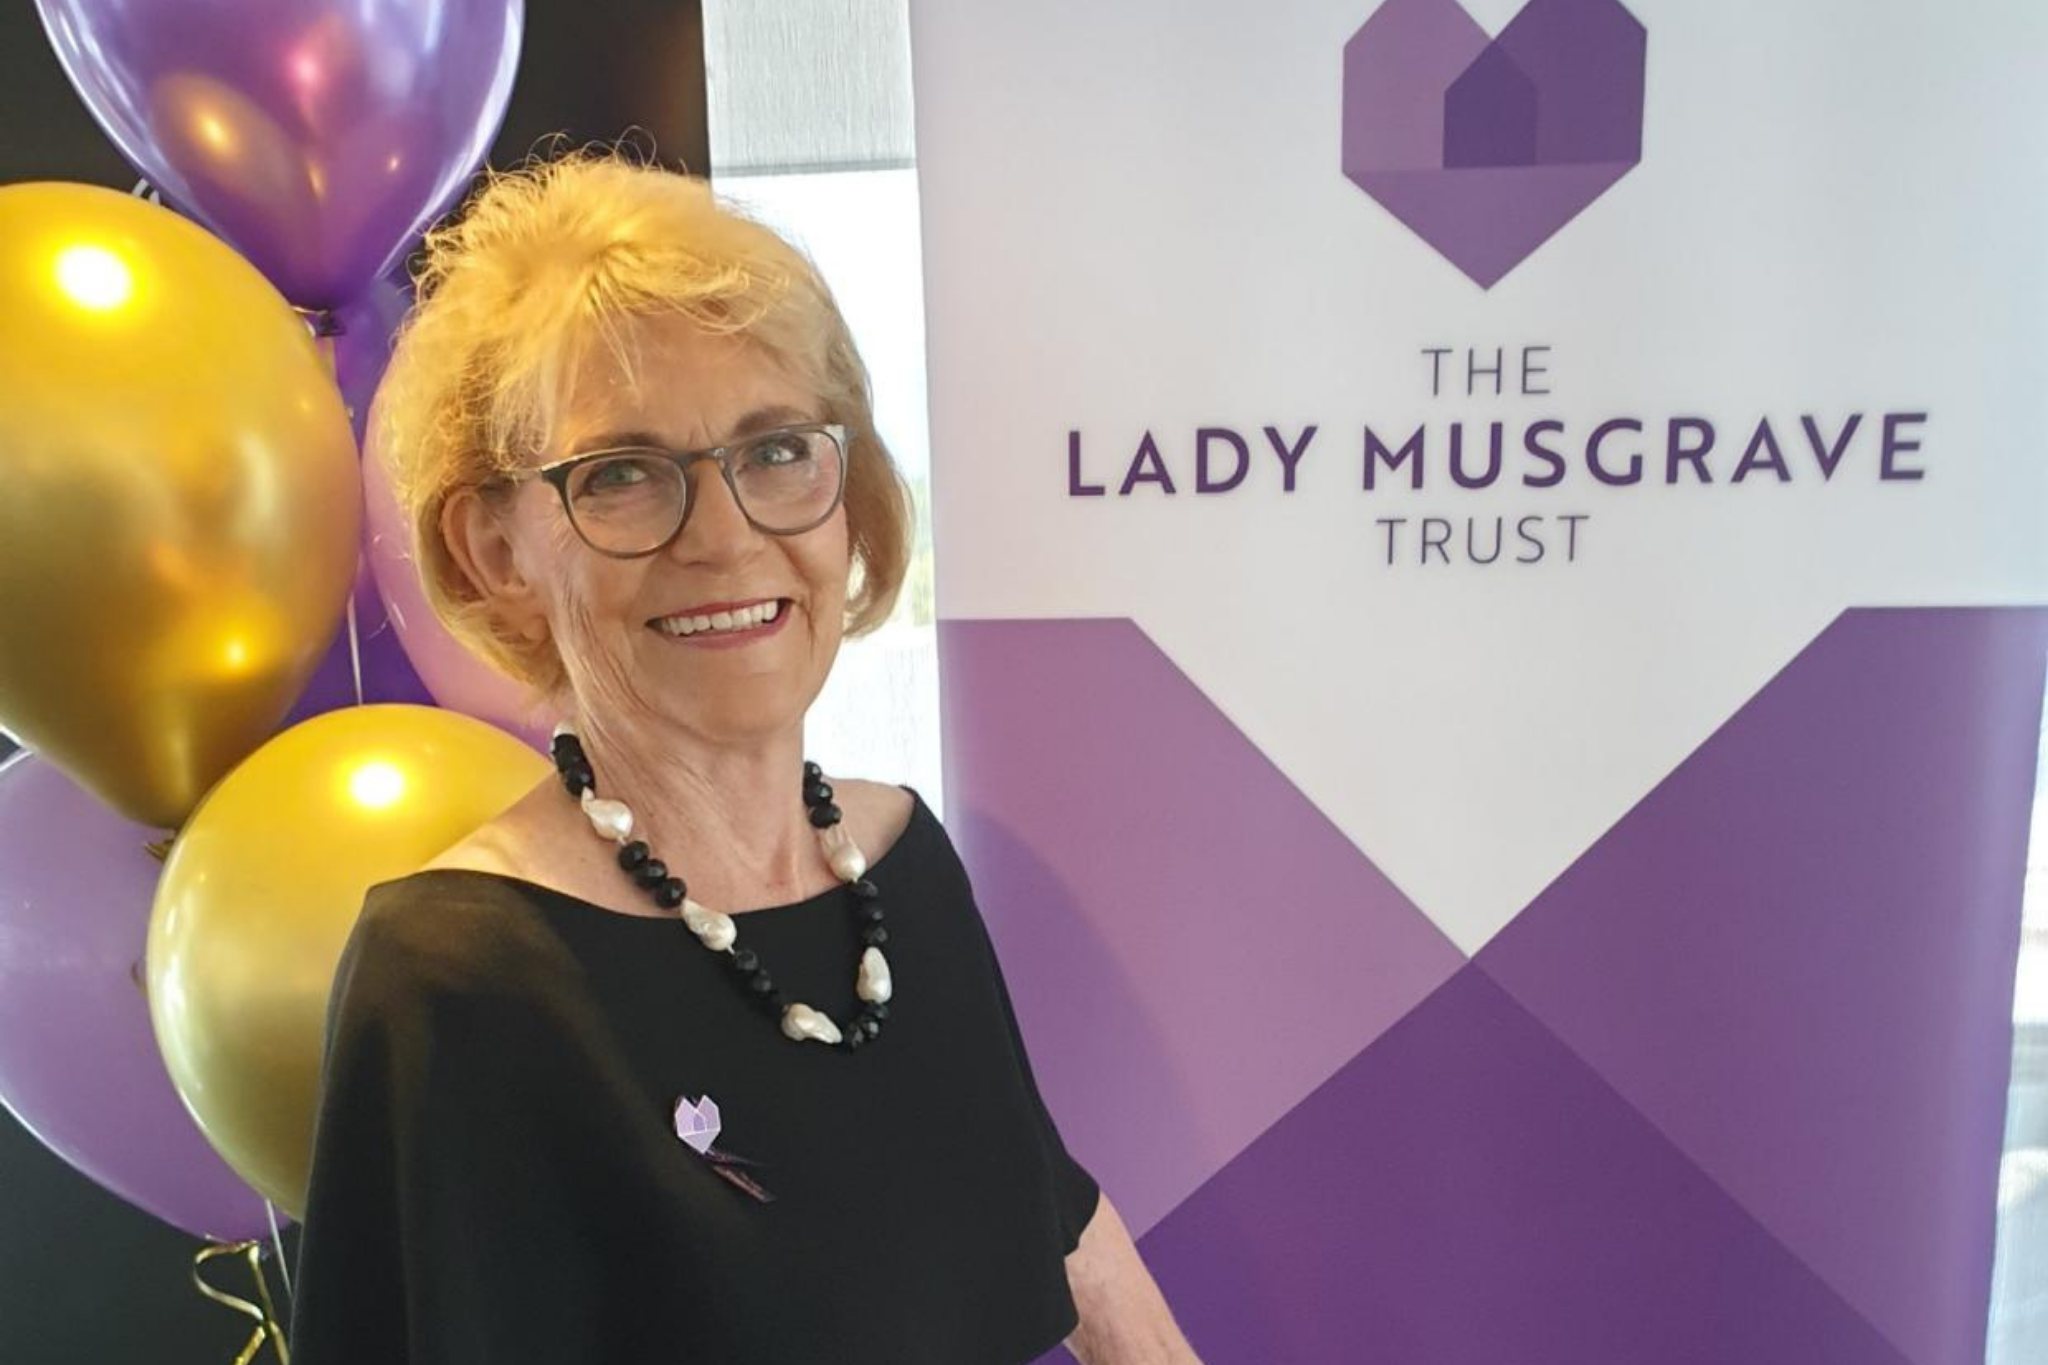 Patricia McCormack in front of a The Lady Musgrave Trust banner